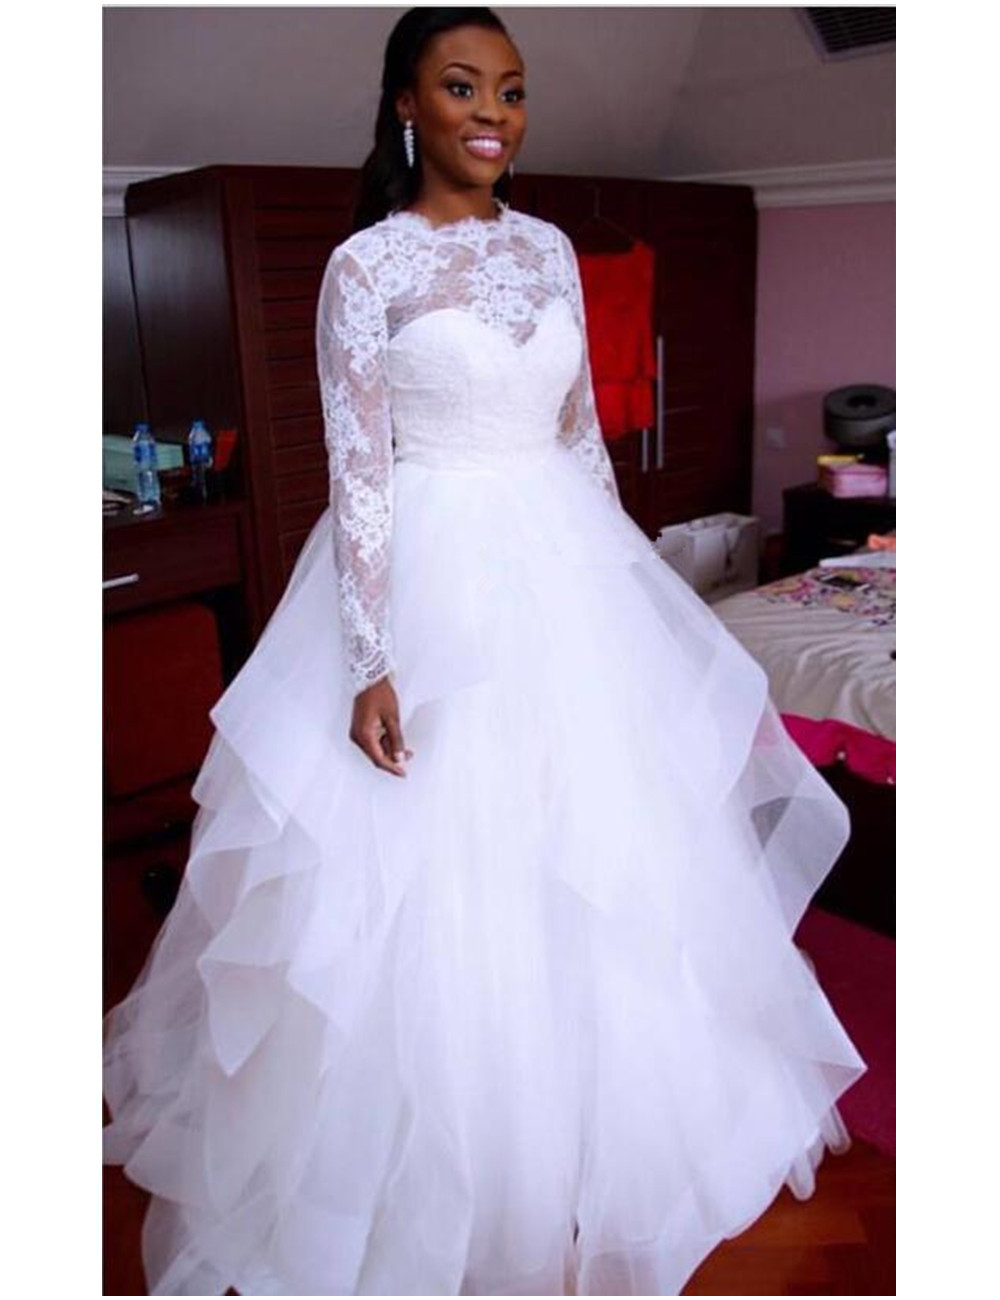 Ball Gown Wedding Dresses In Johannesburg : Compare prices on wedding dresses south africa